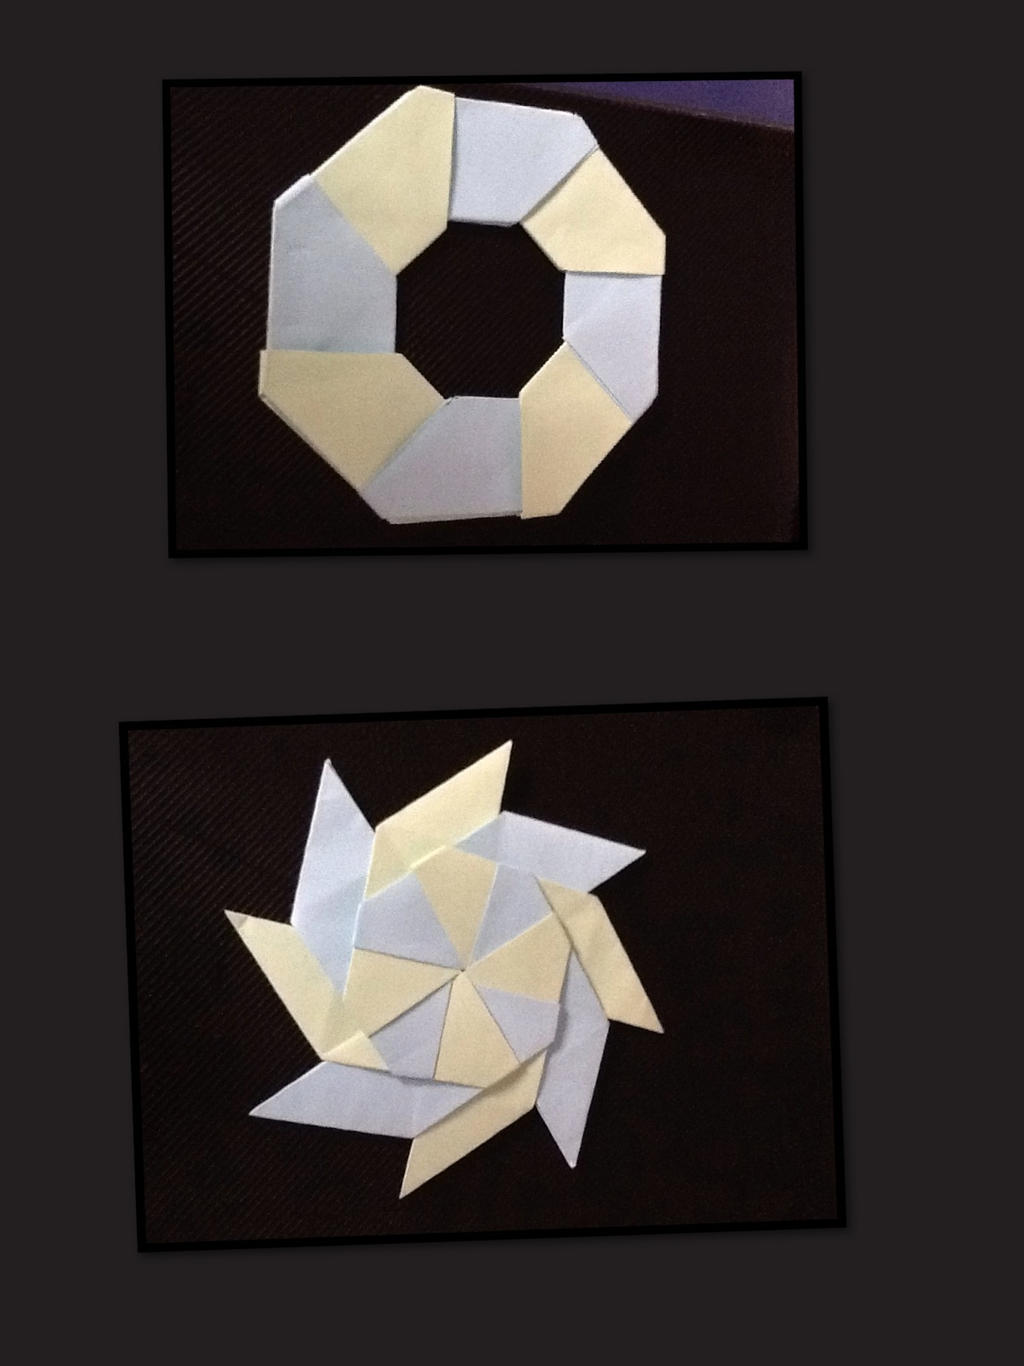 how to make a 3d transforming ninja star